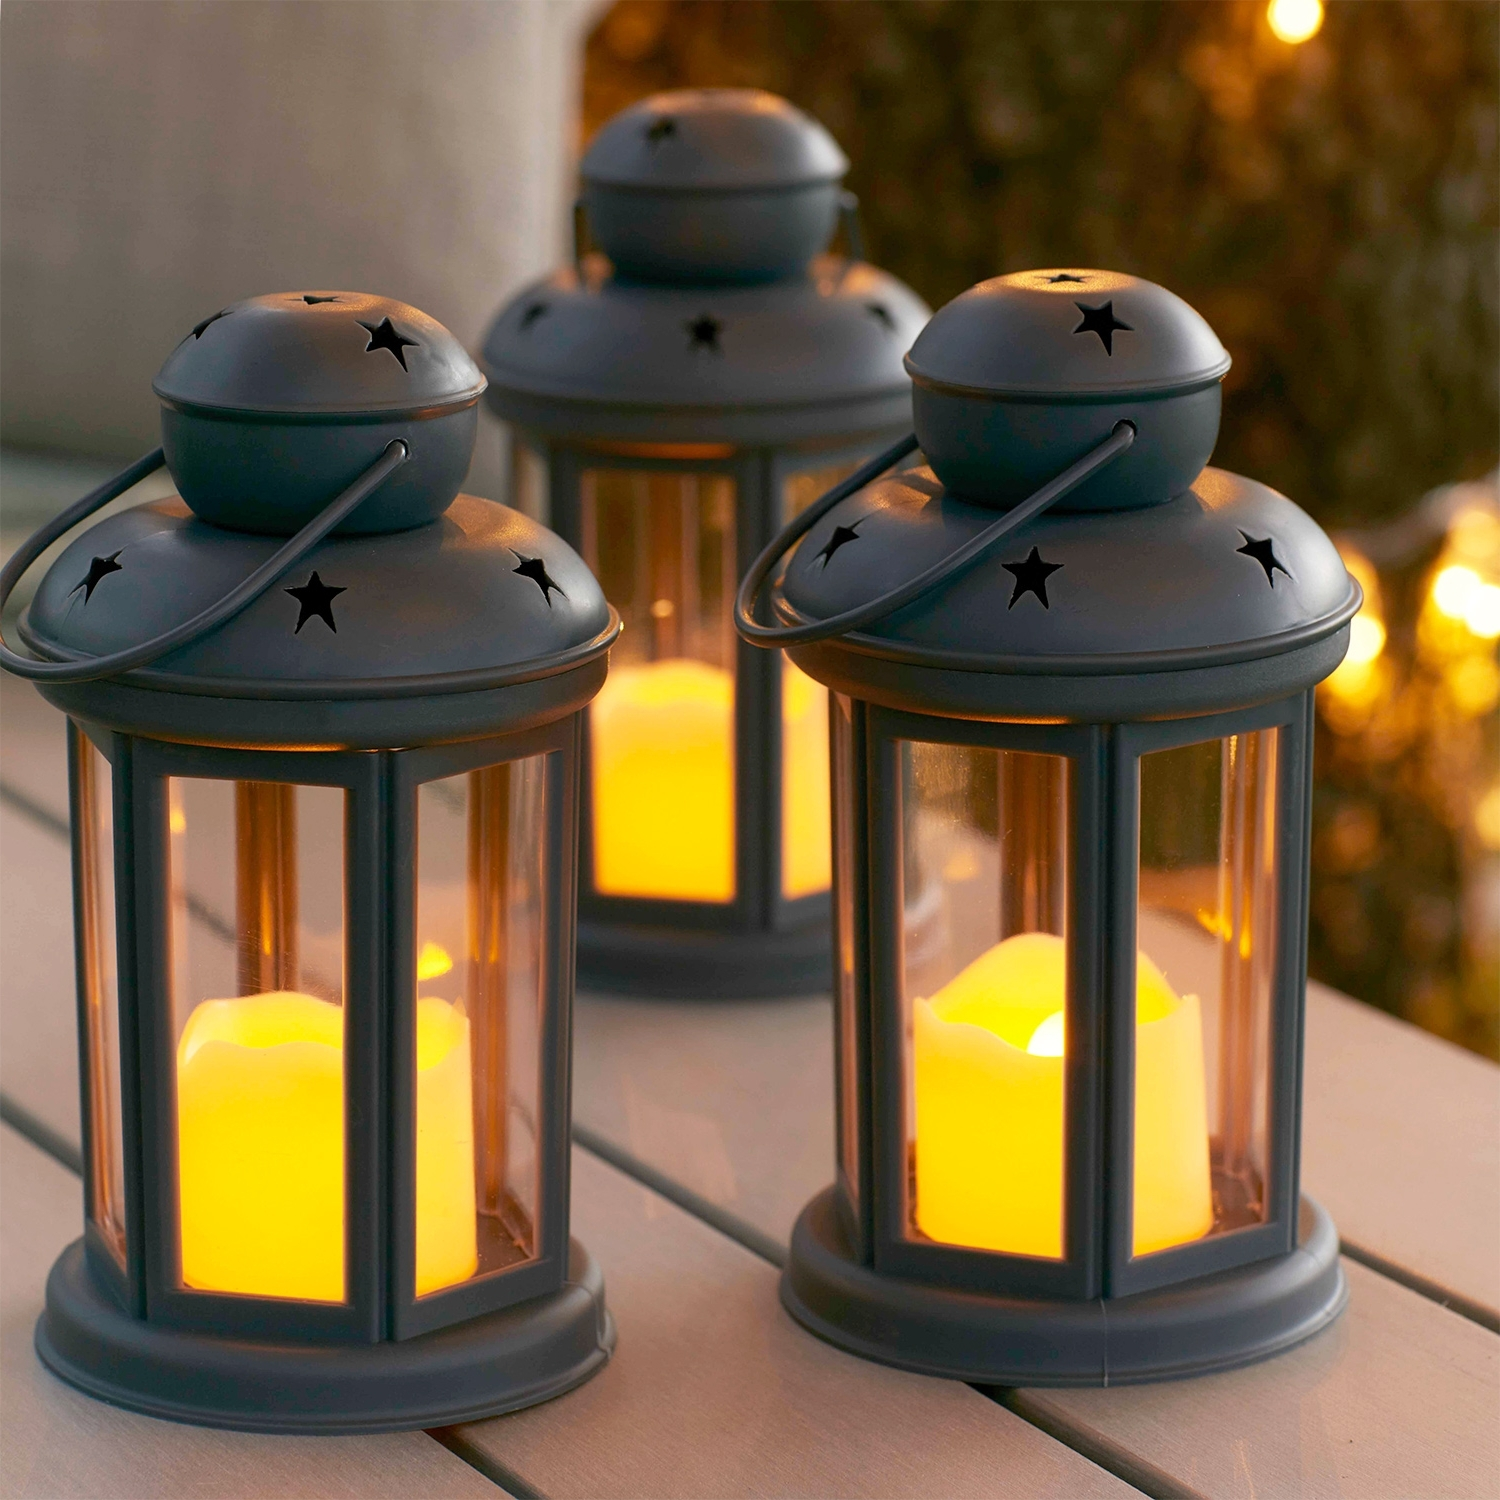 Outdoor Lanterns With Led Candles Throughout Most Recently Released Set Of 3 Grey Battery Operated Led Indoor Outdoor Flameless Candle (Gallery 15 of 20)